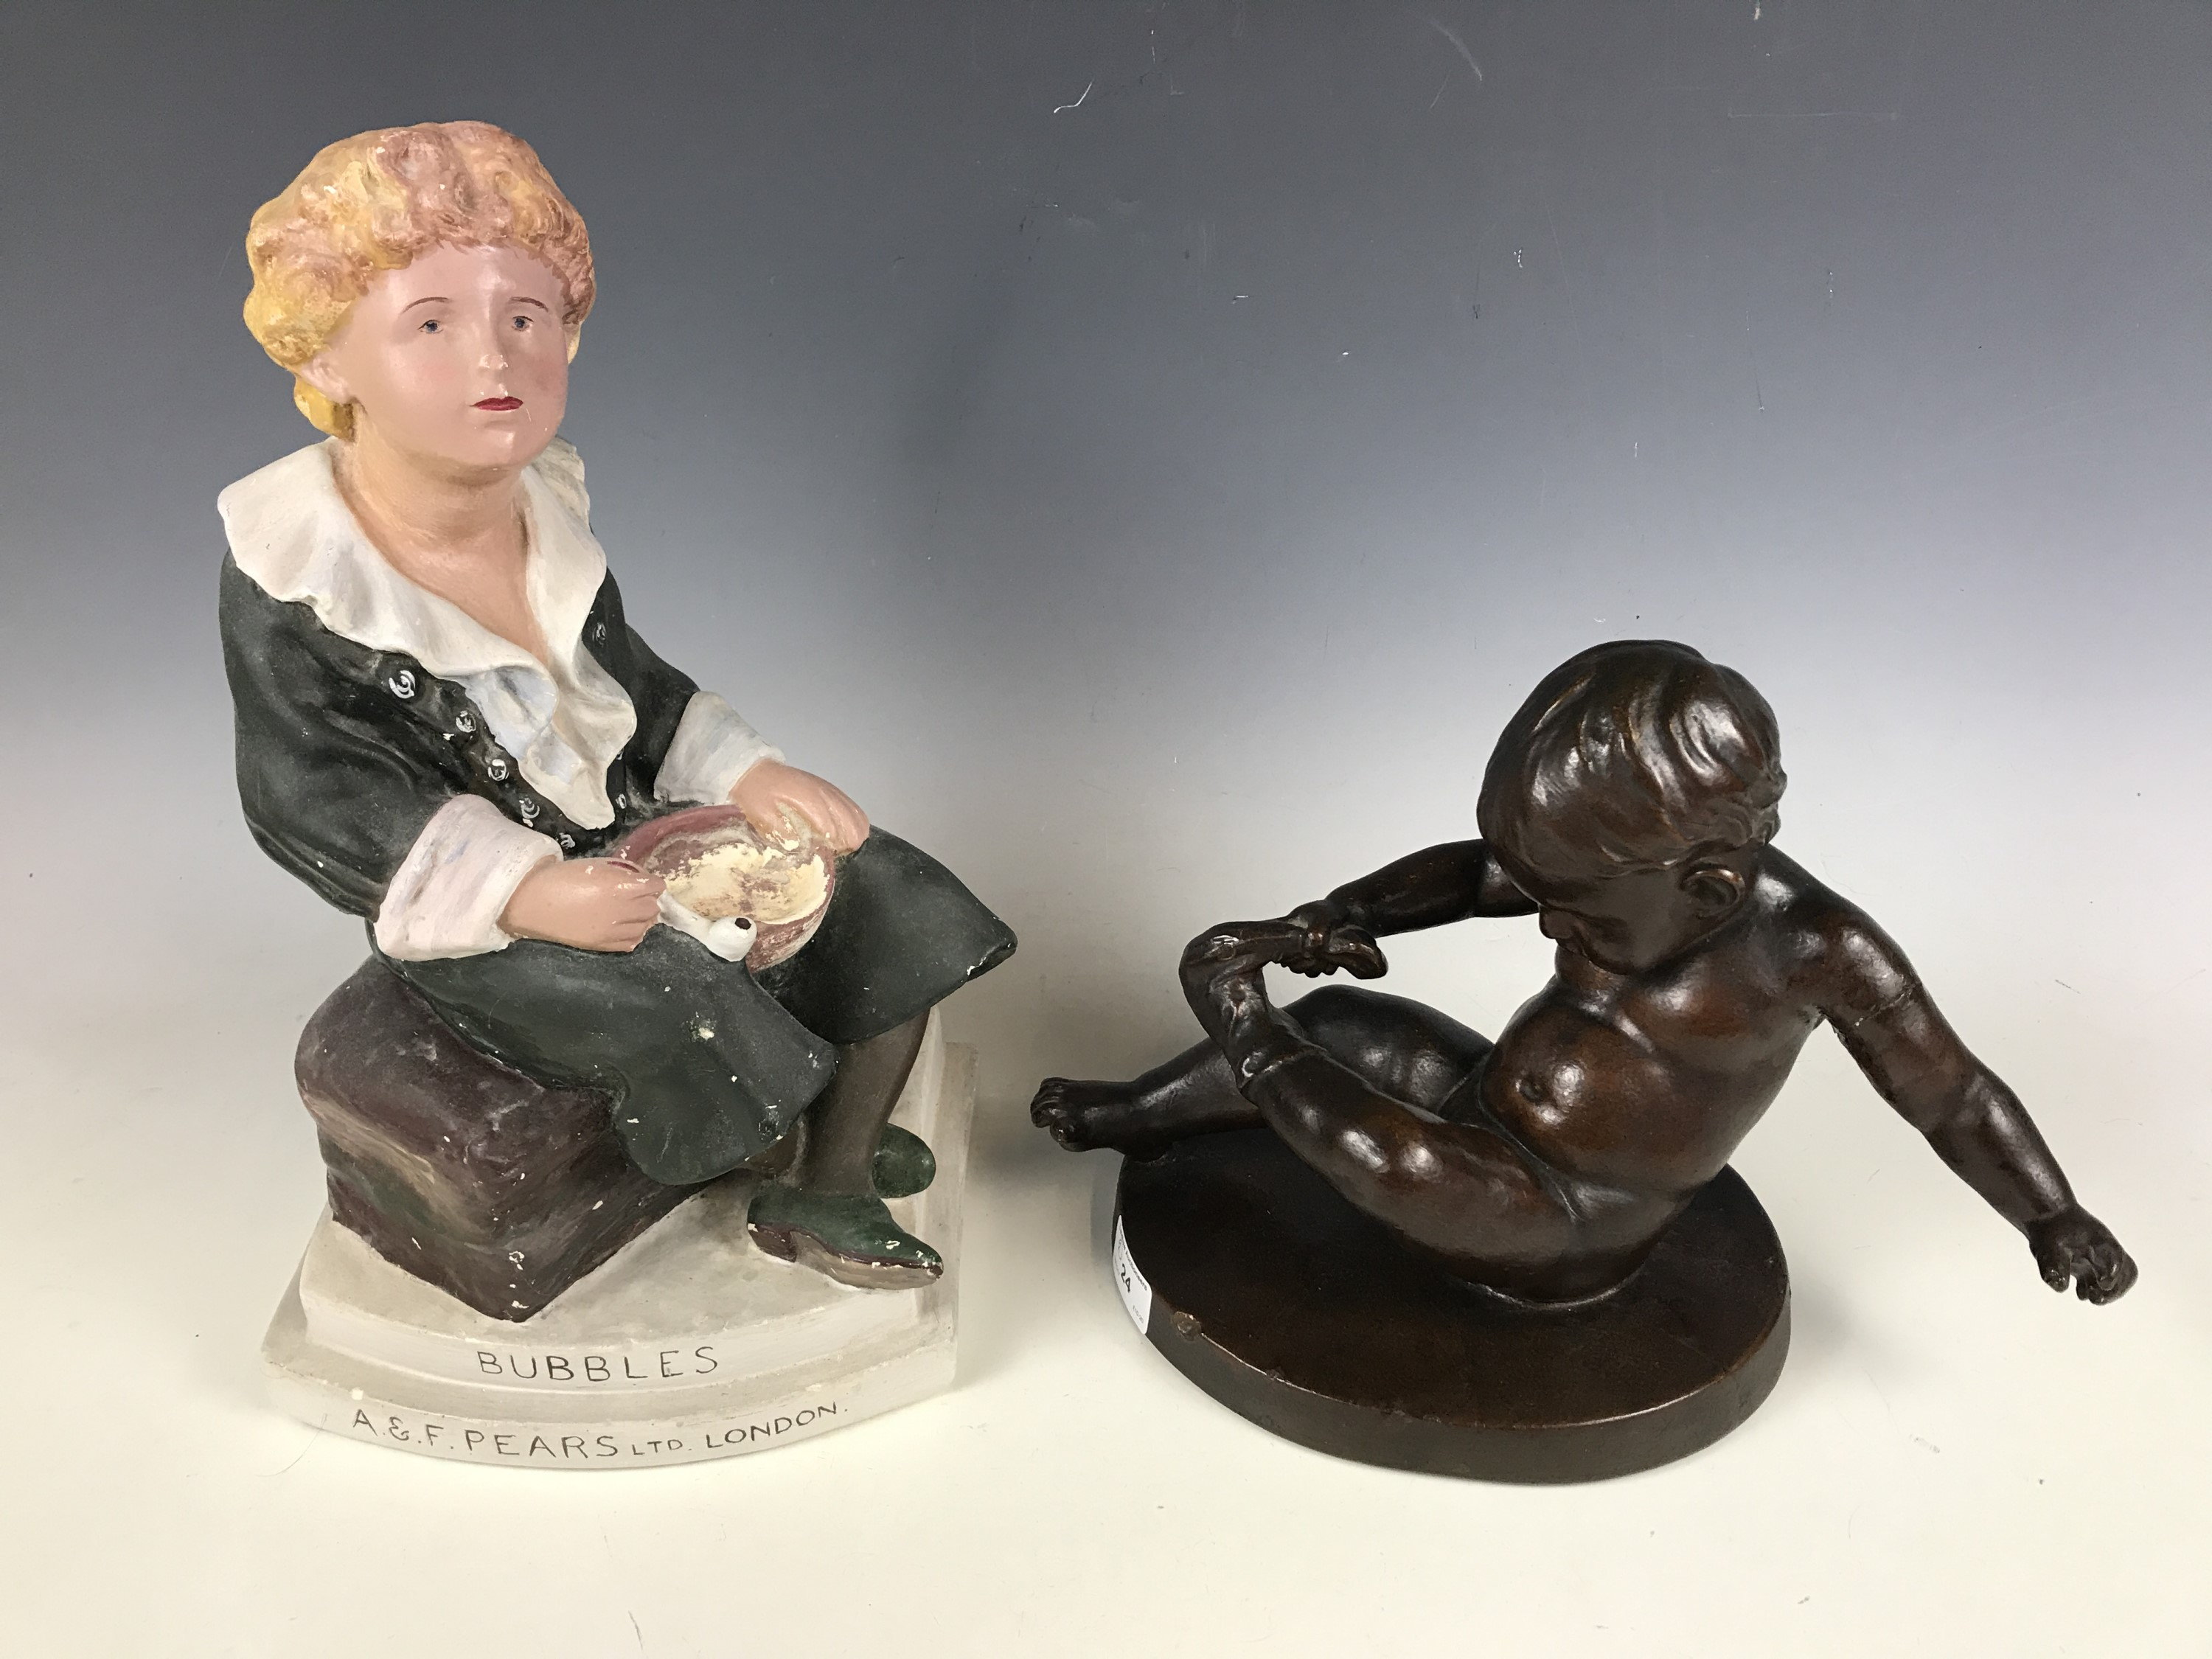 Lot 24 - A Bubbles advertising figure for A & F Pears Ltd of London, together with one other (a/f)